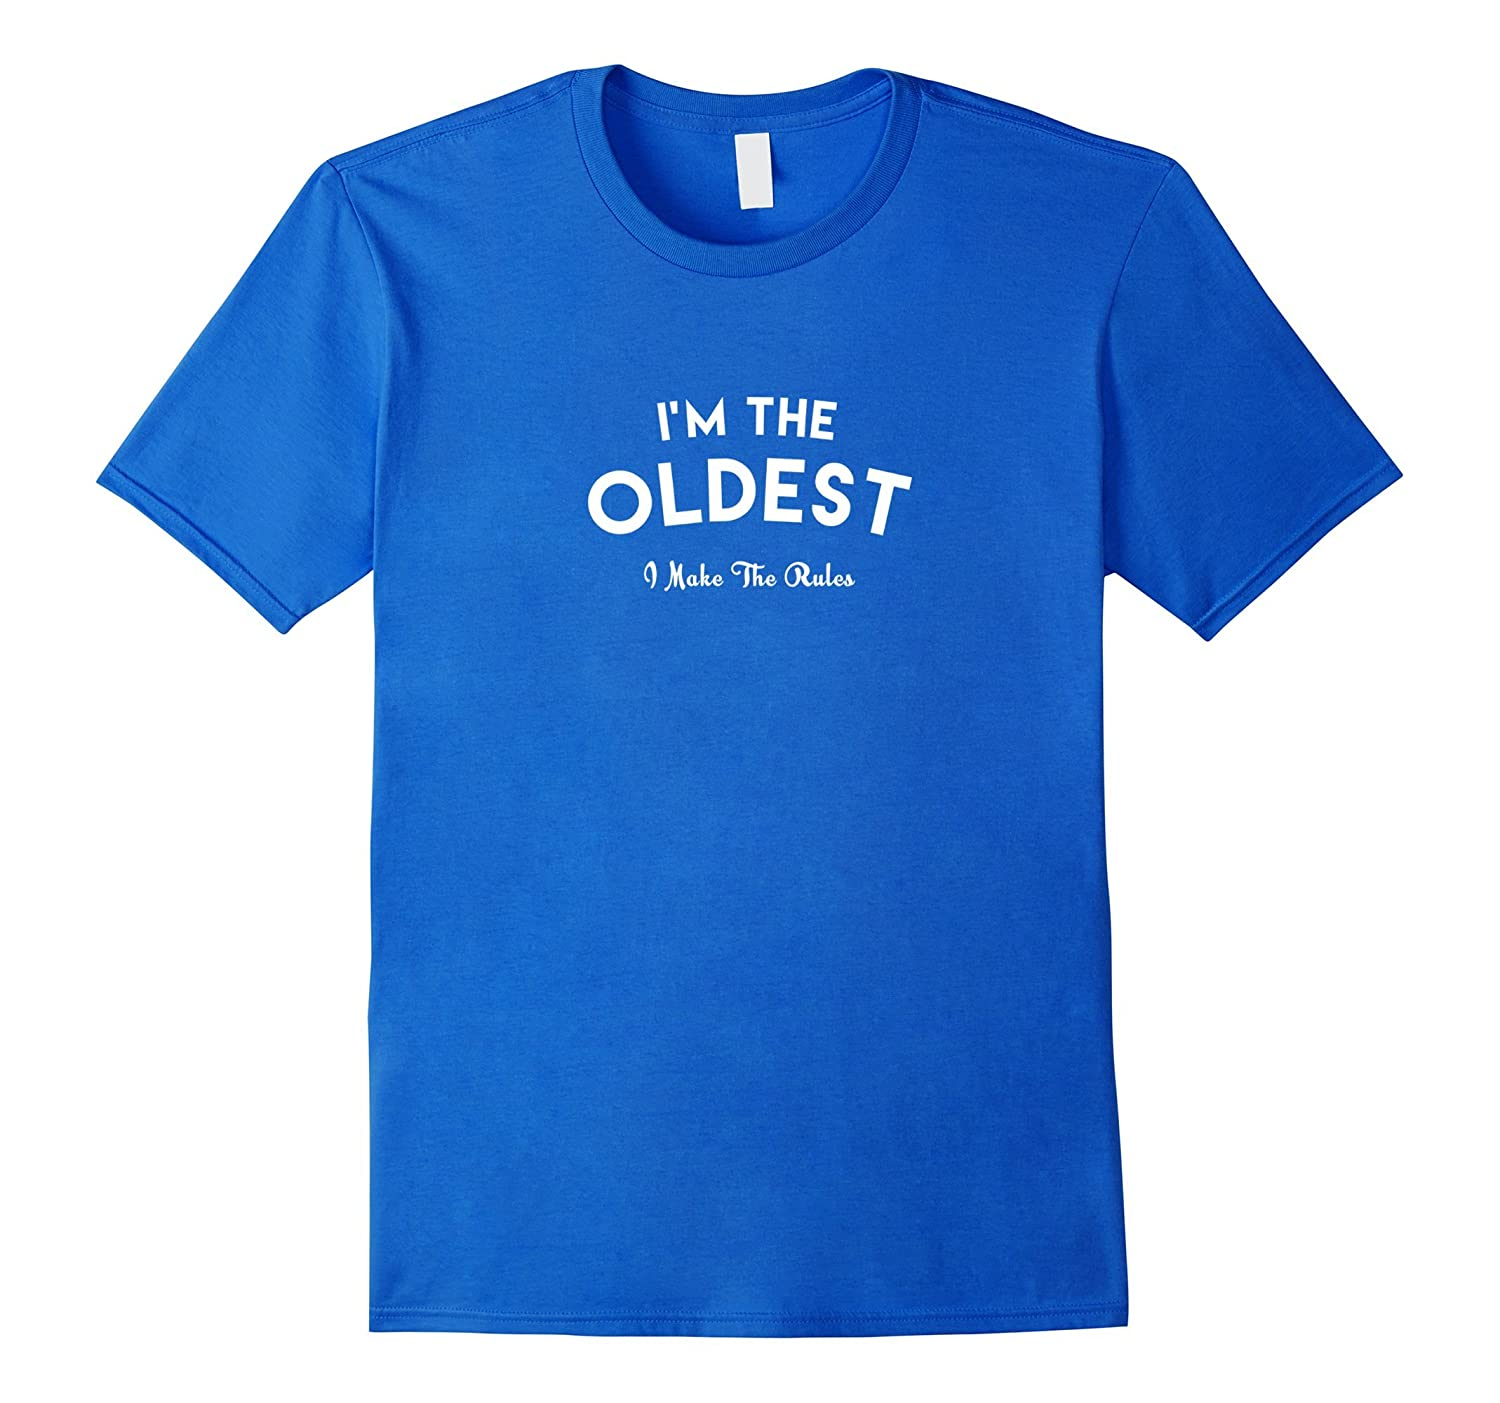 I'm The Oldest Child Shirt, Funny I Makes the Rules Gift-CL